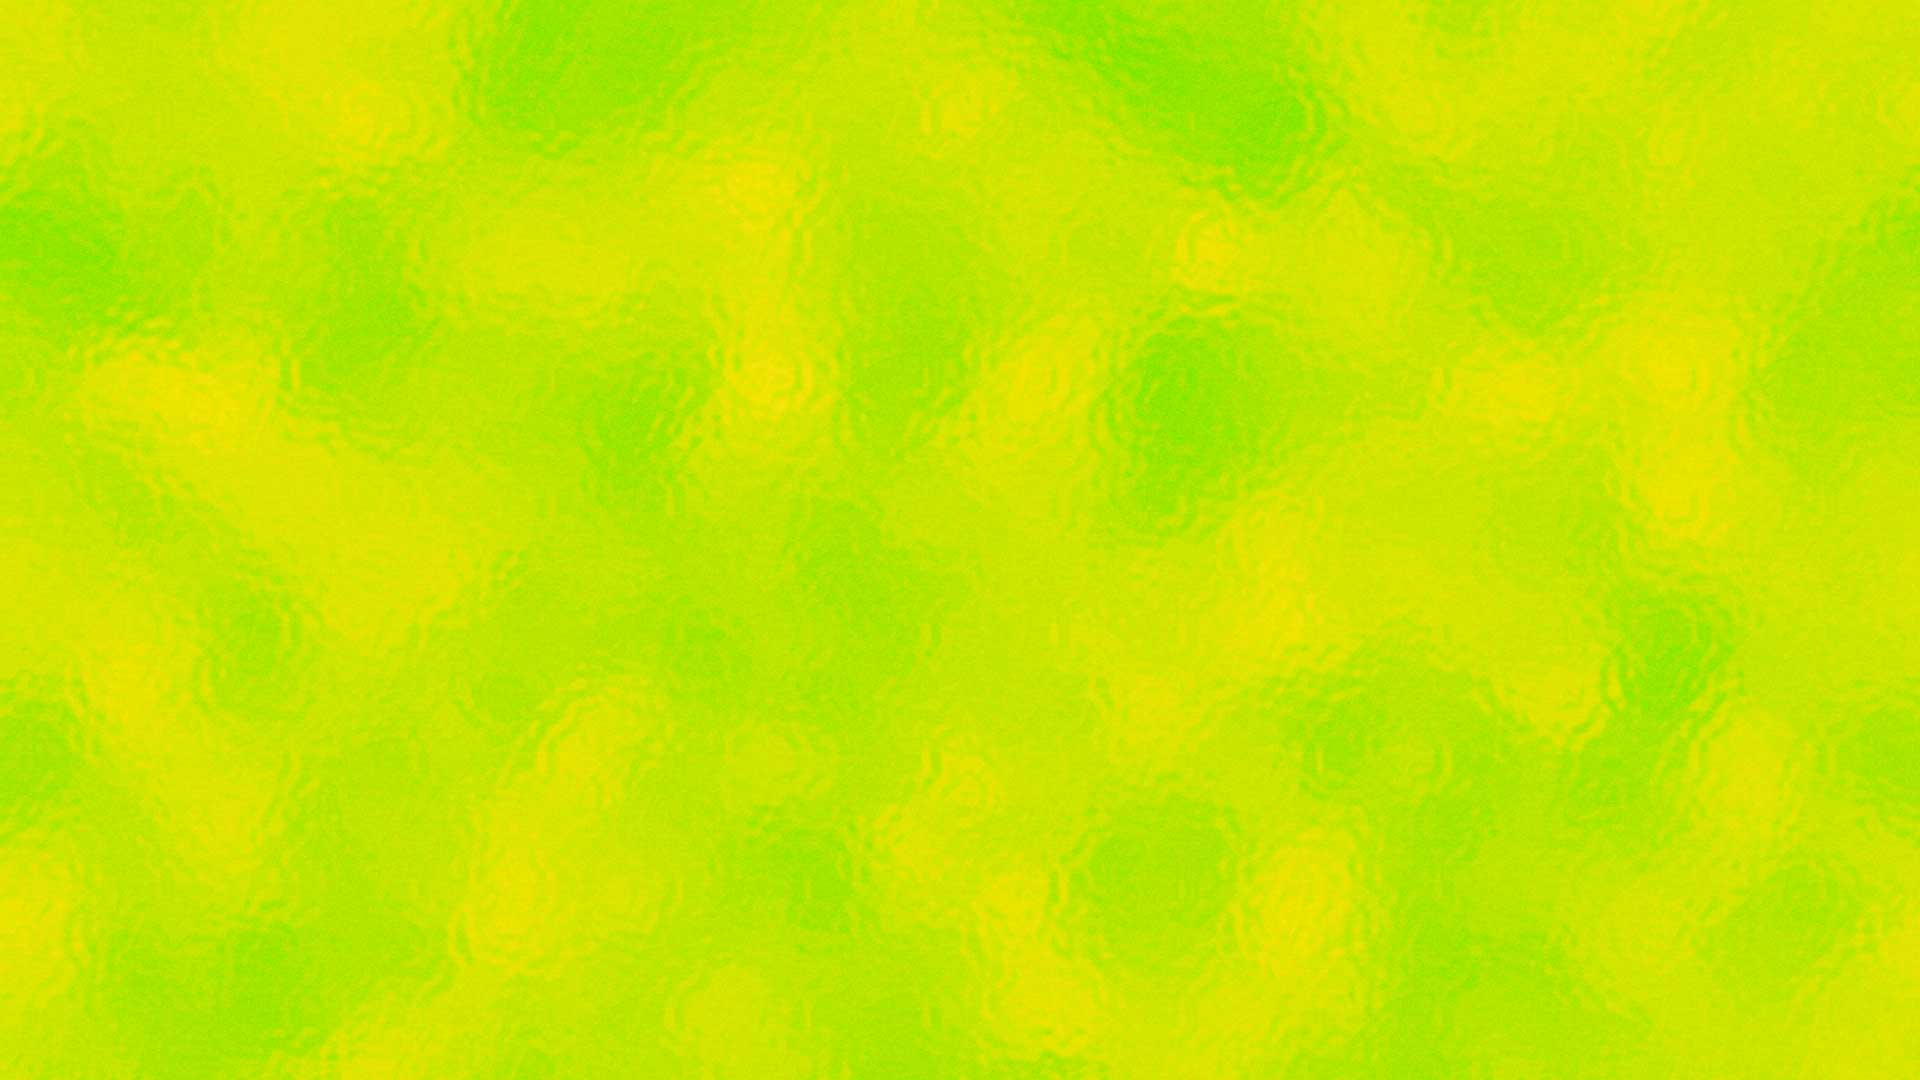 Green Yellow Background Images Yellow Lime Green Background